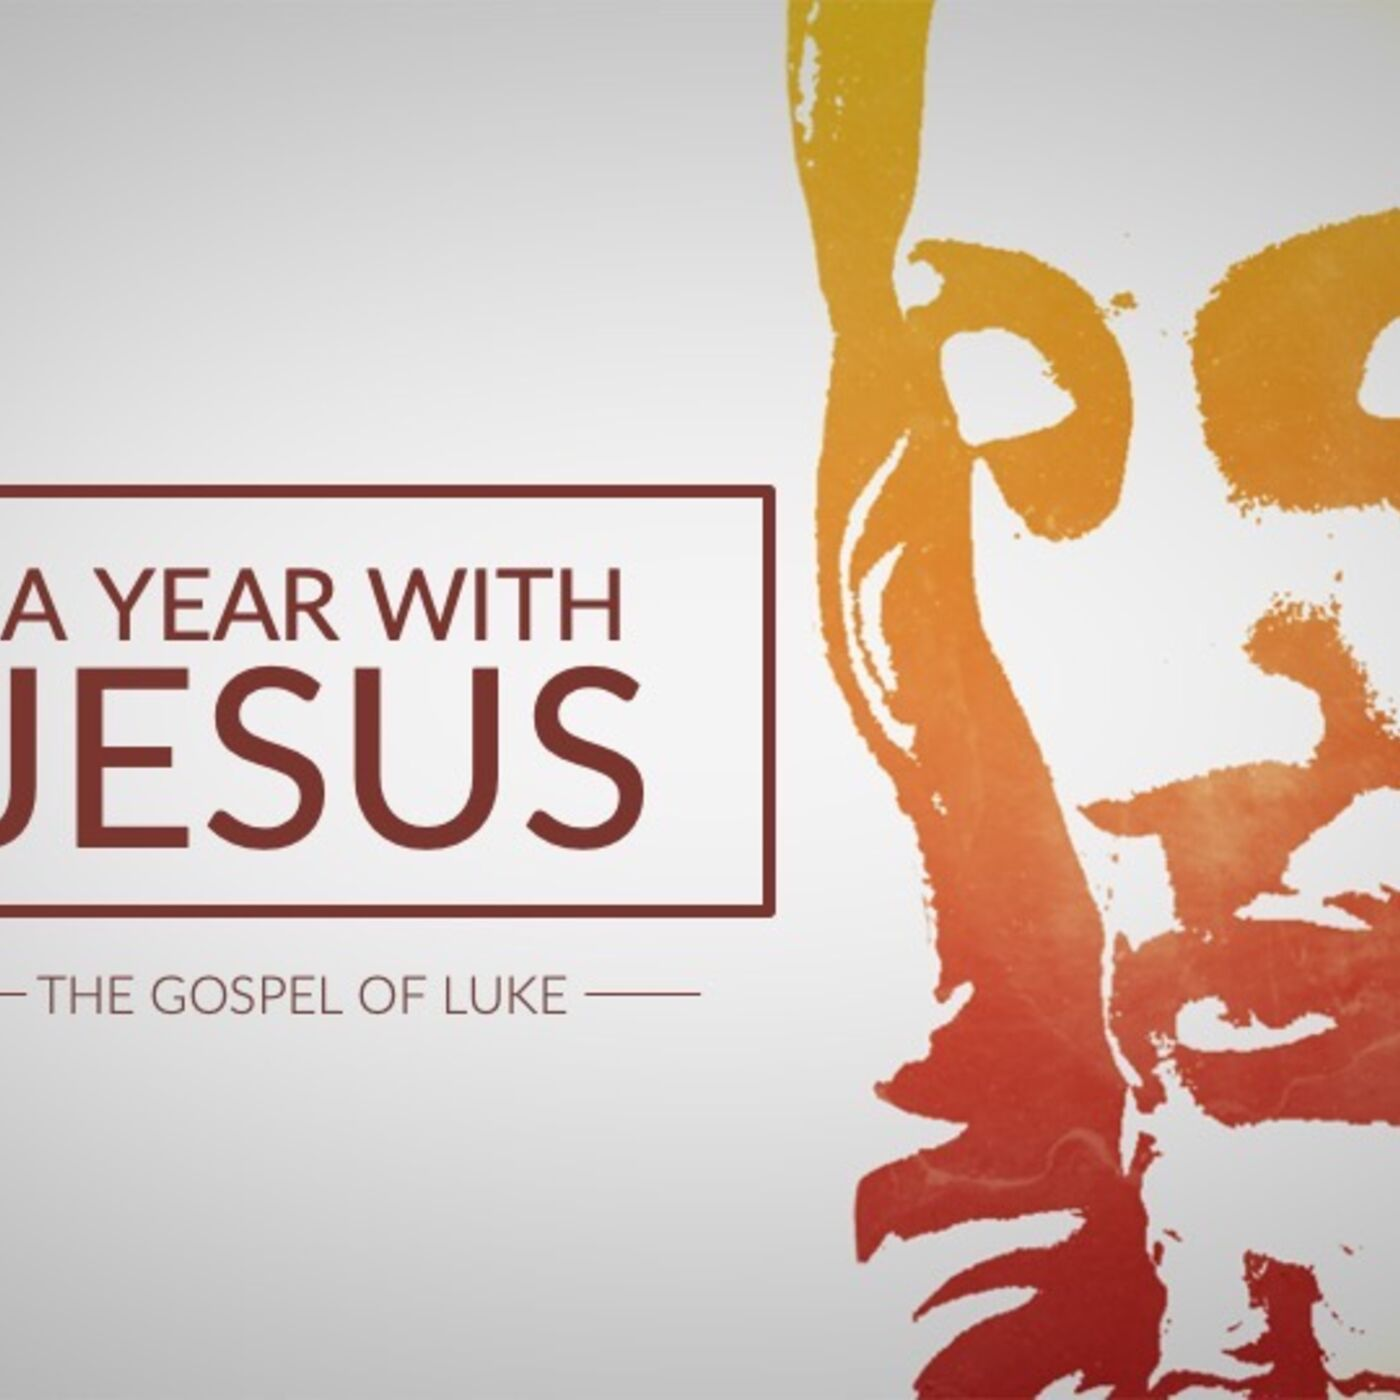 A Year With Jesus: Rich Toward God (Luke 12:13-21)